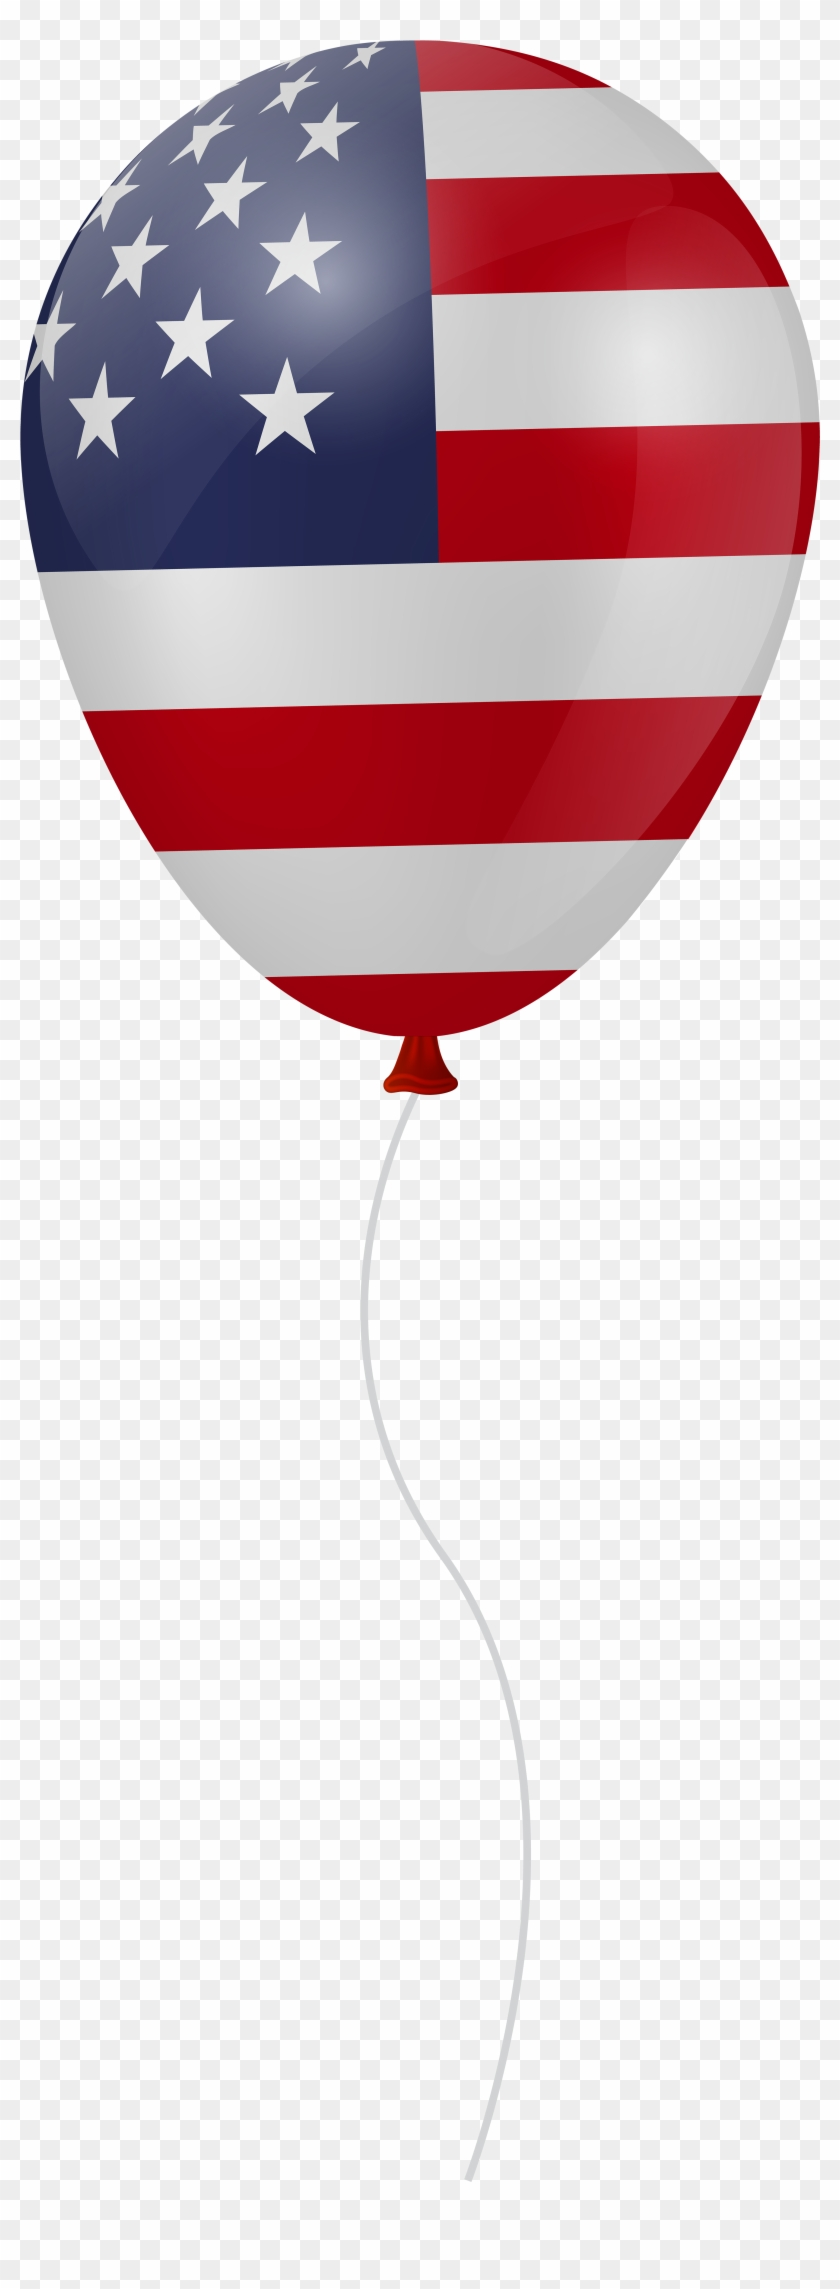 Clipart Balloon 4th July, HD Png Download (#5458435).